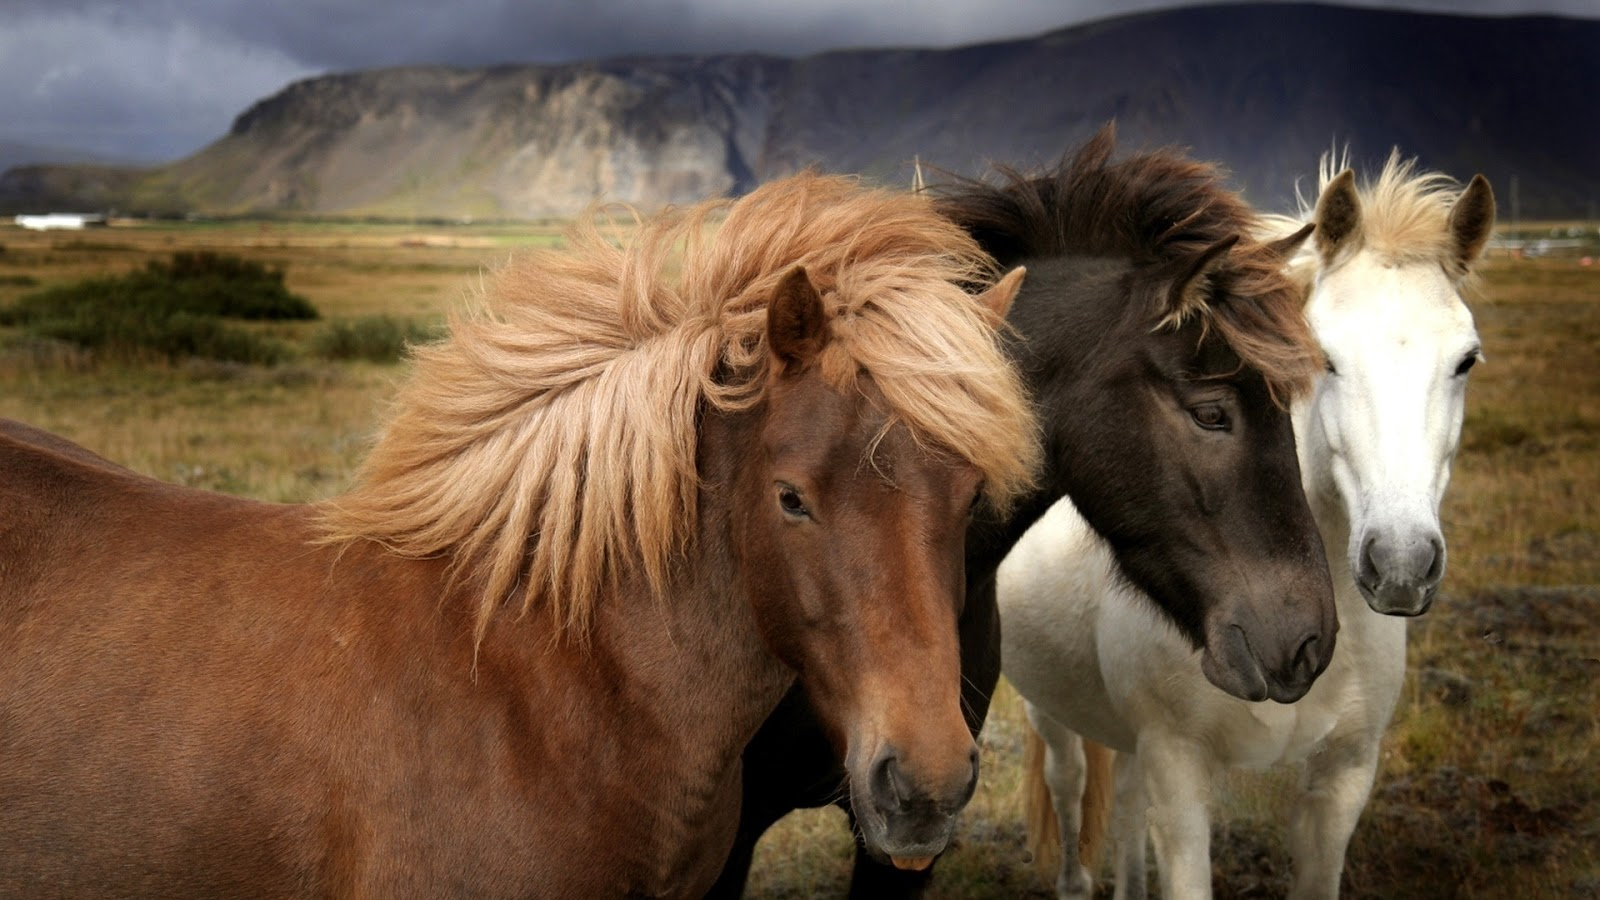 Great   Wallpaper Horse Rose - wild+horses+wallpapers+32  Trends_701330.jpg